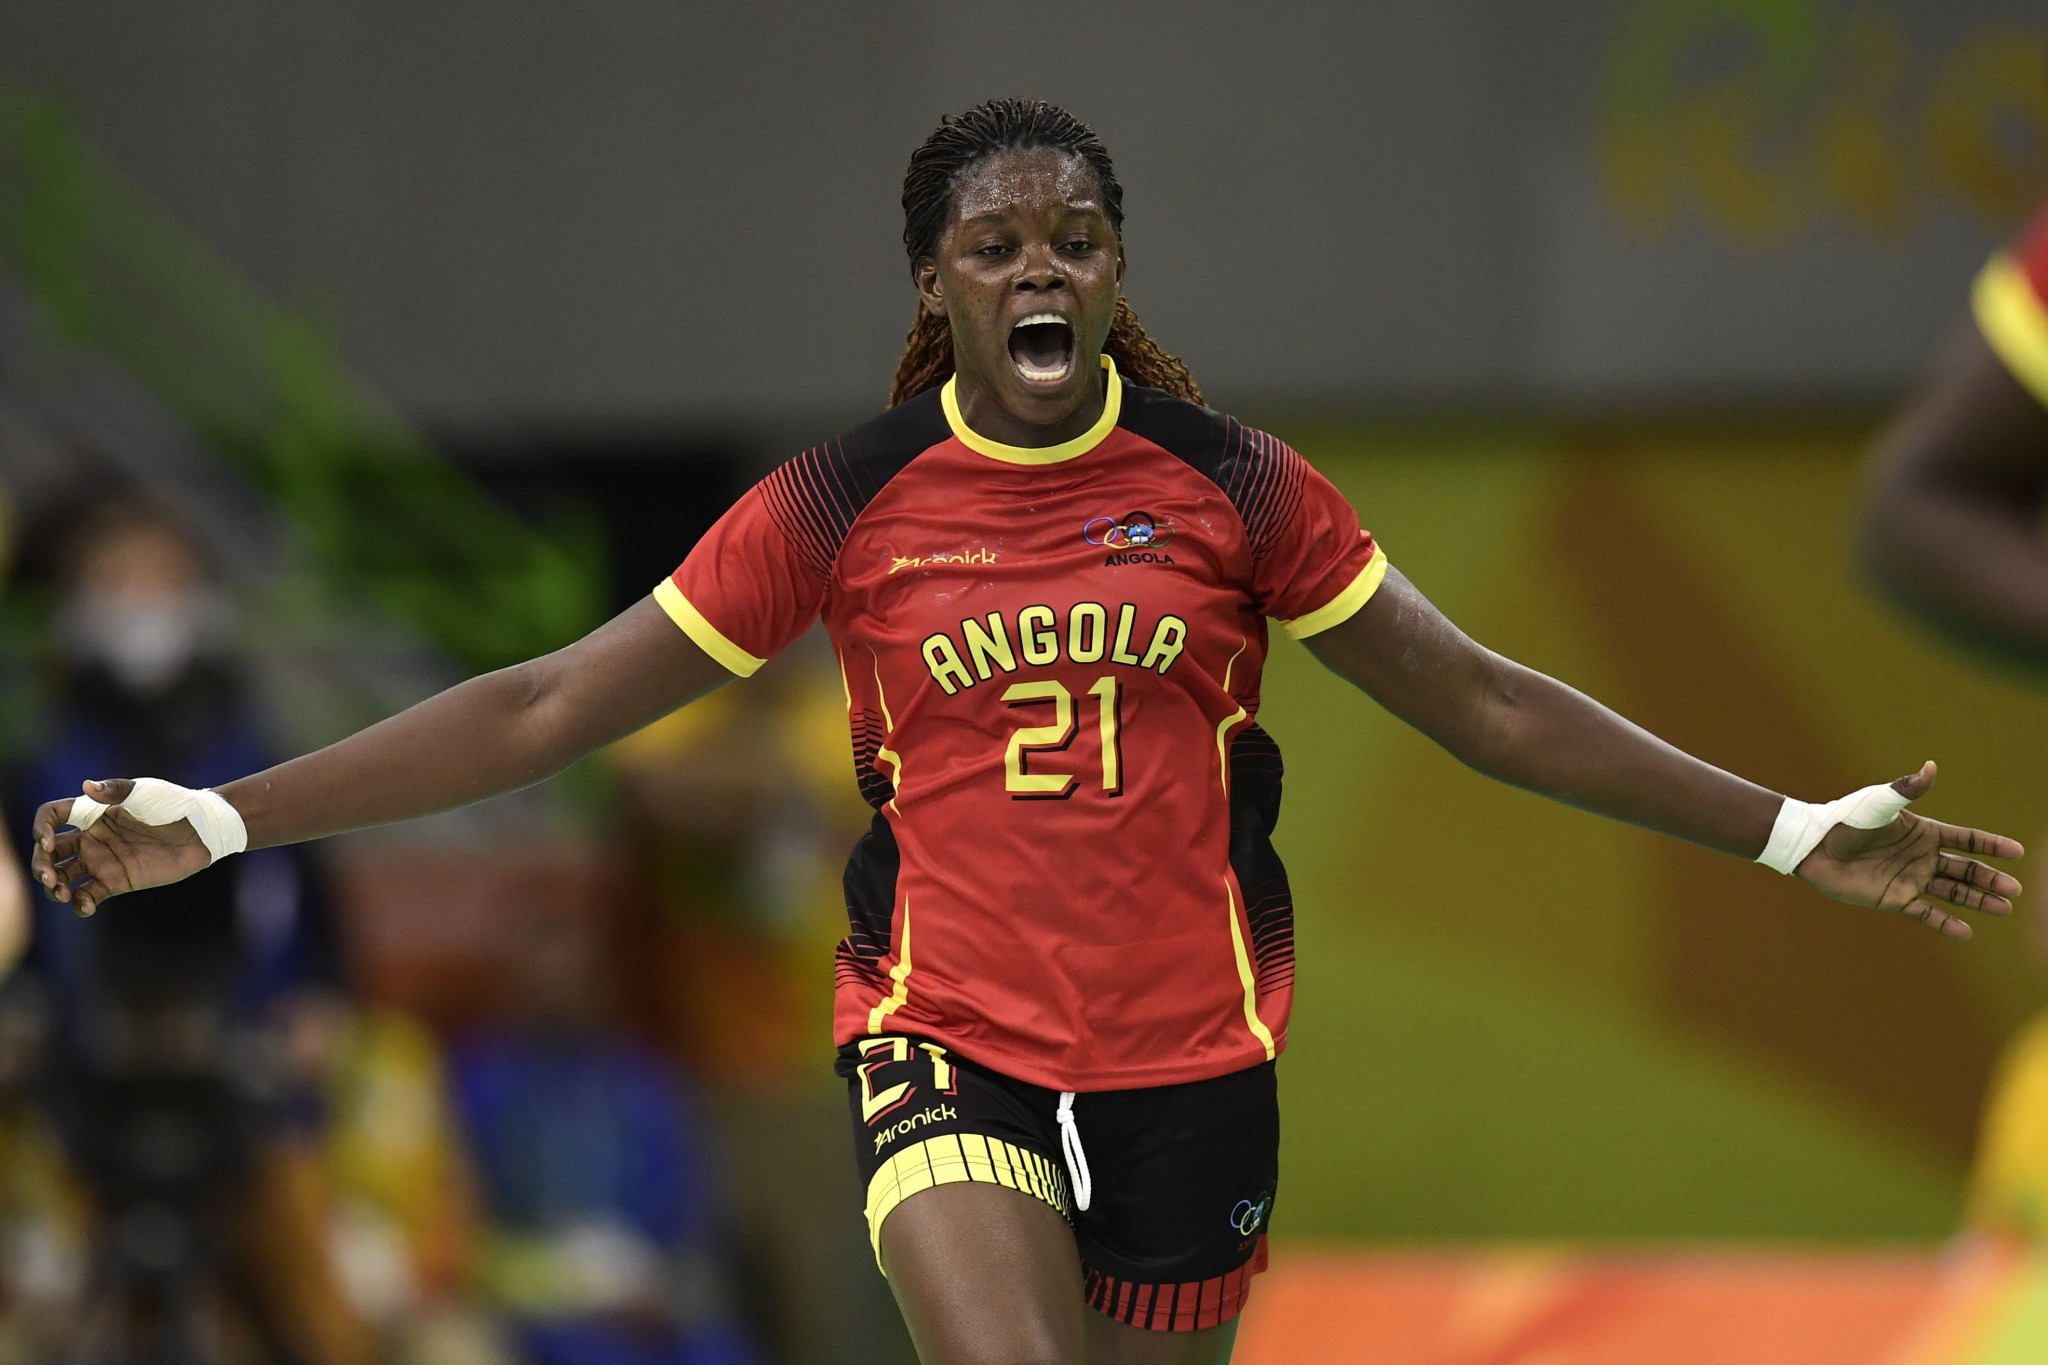 Angola and Cameroon to meet in African Women's Handball Championship final